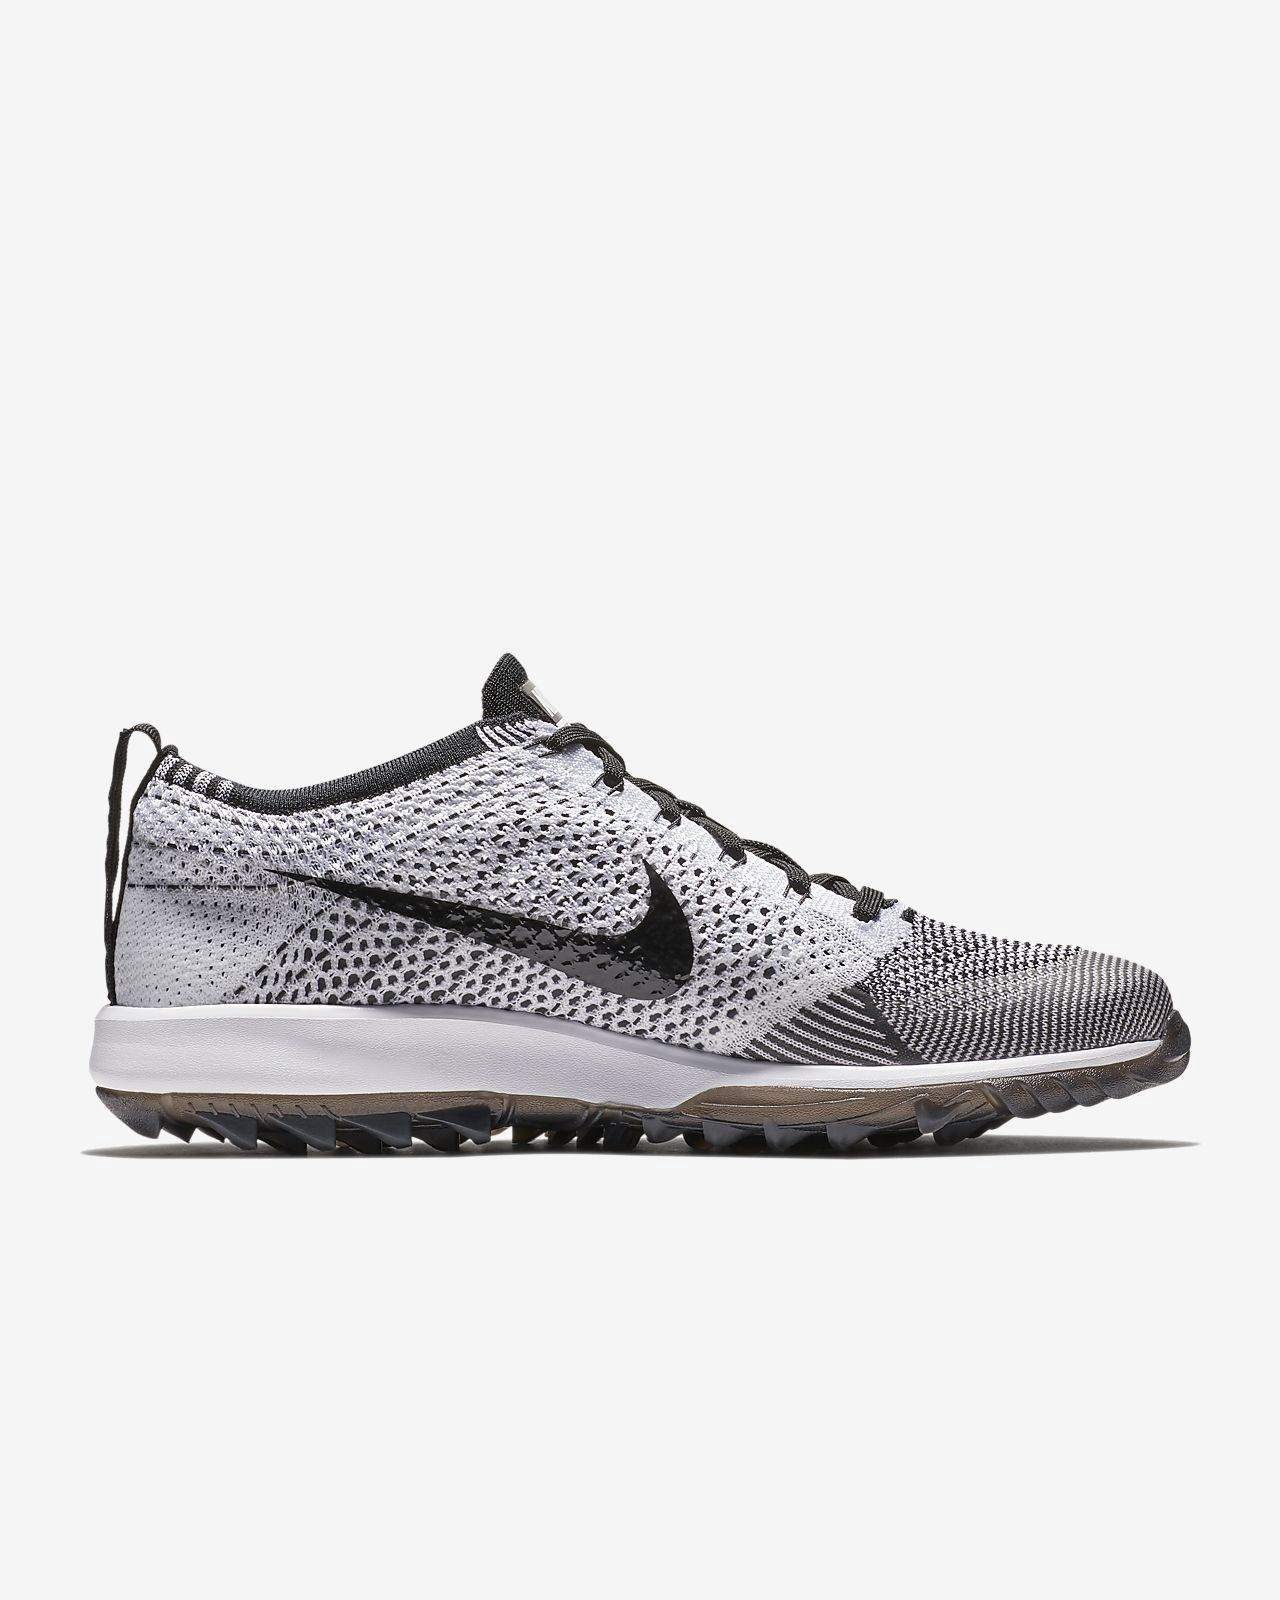 fc4f355499a7 Nike Flyknit Racer G Men s Golf Shoe - 10.5  mensgolfshoes